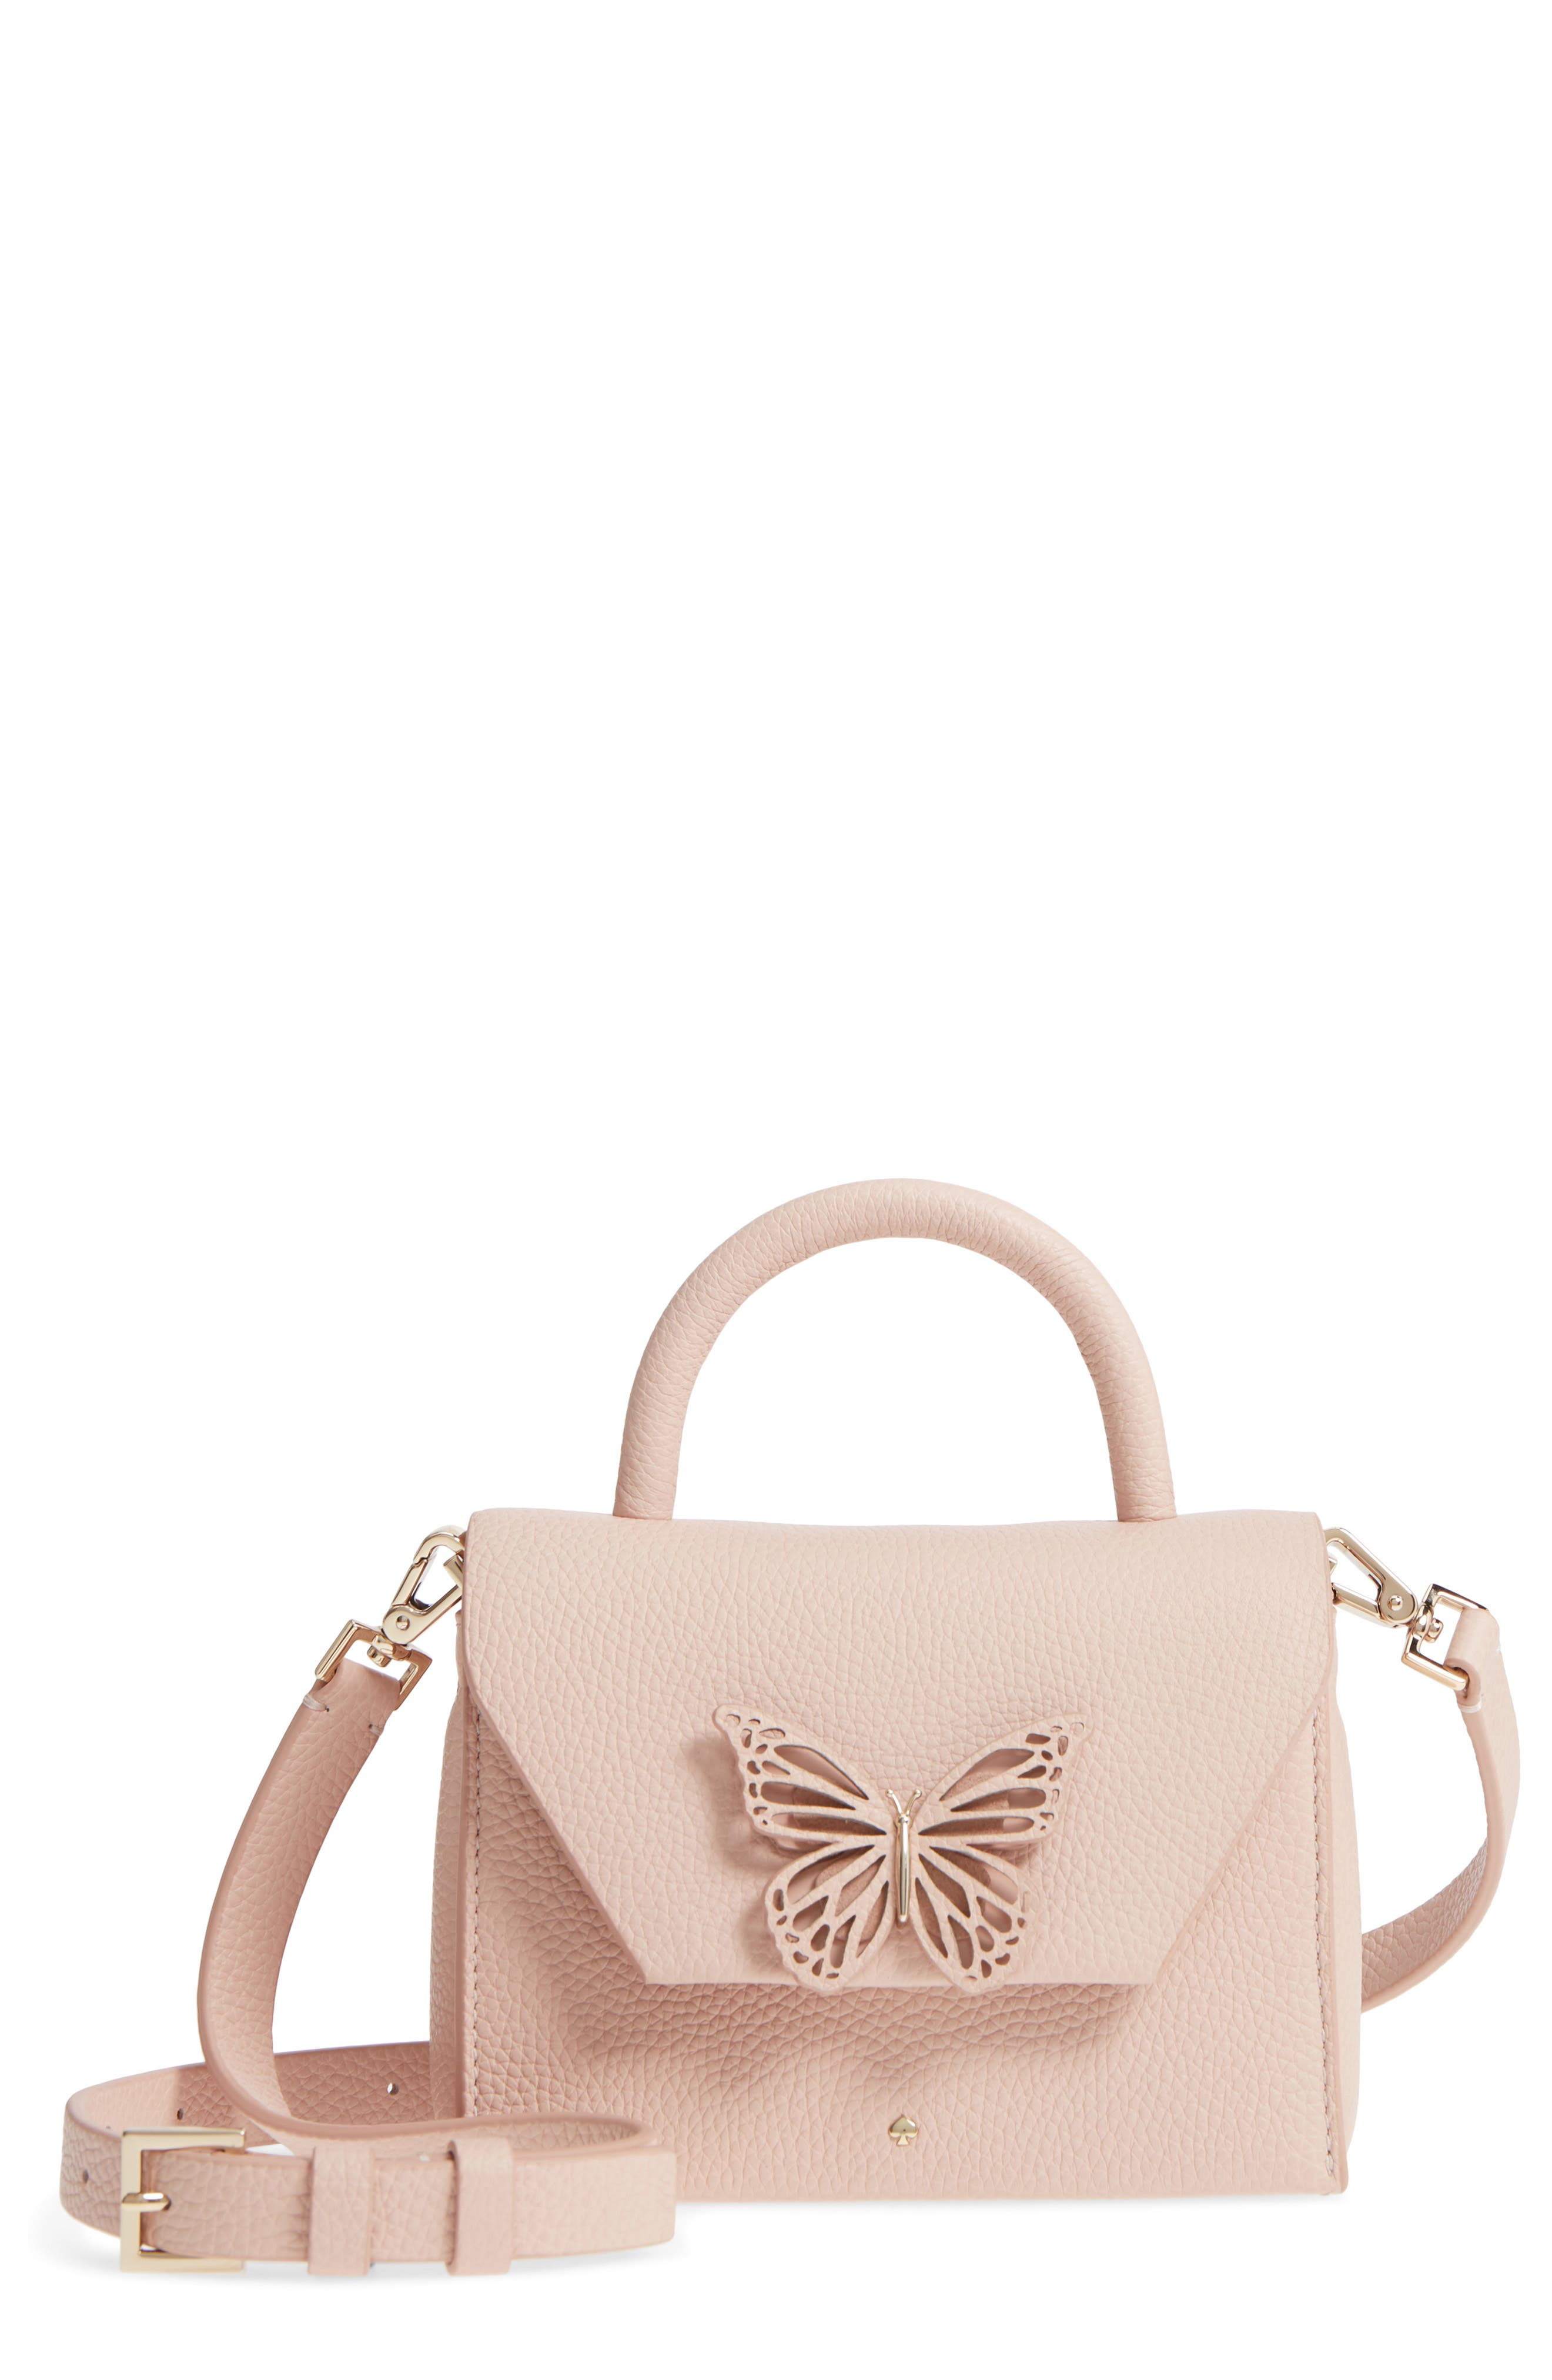 madison knollwood drive - hope leather crossbody bag,                             Main thumbnail 1, color,                             Dolce